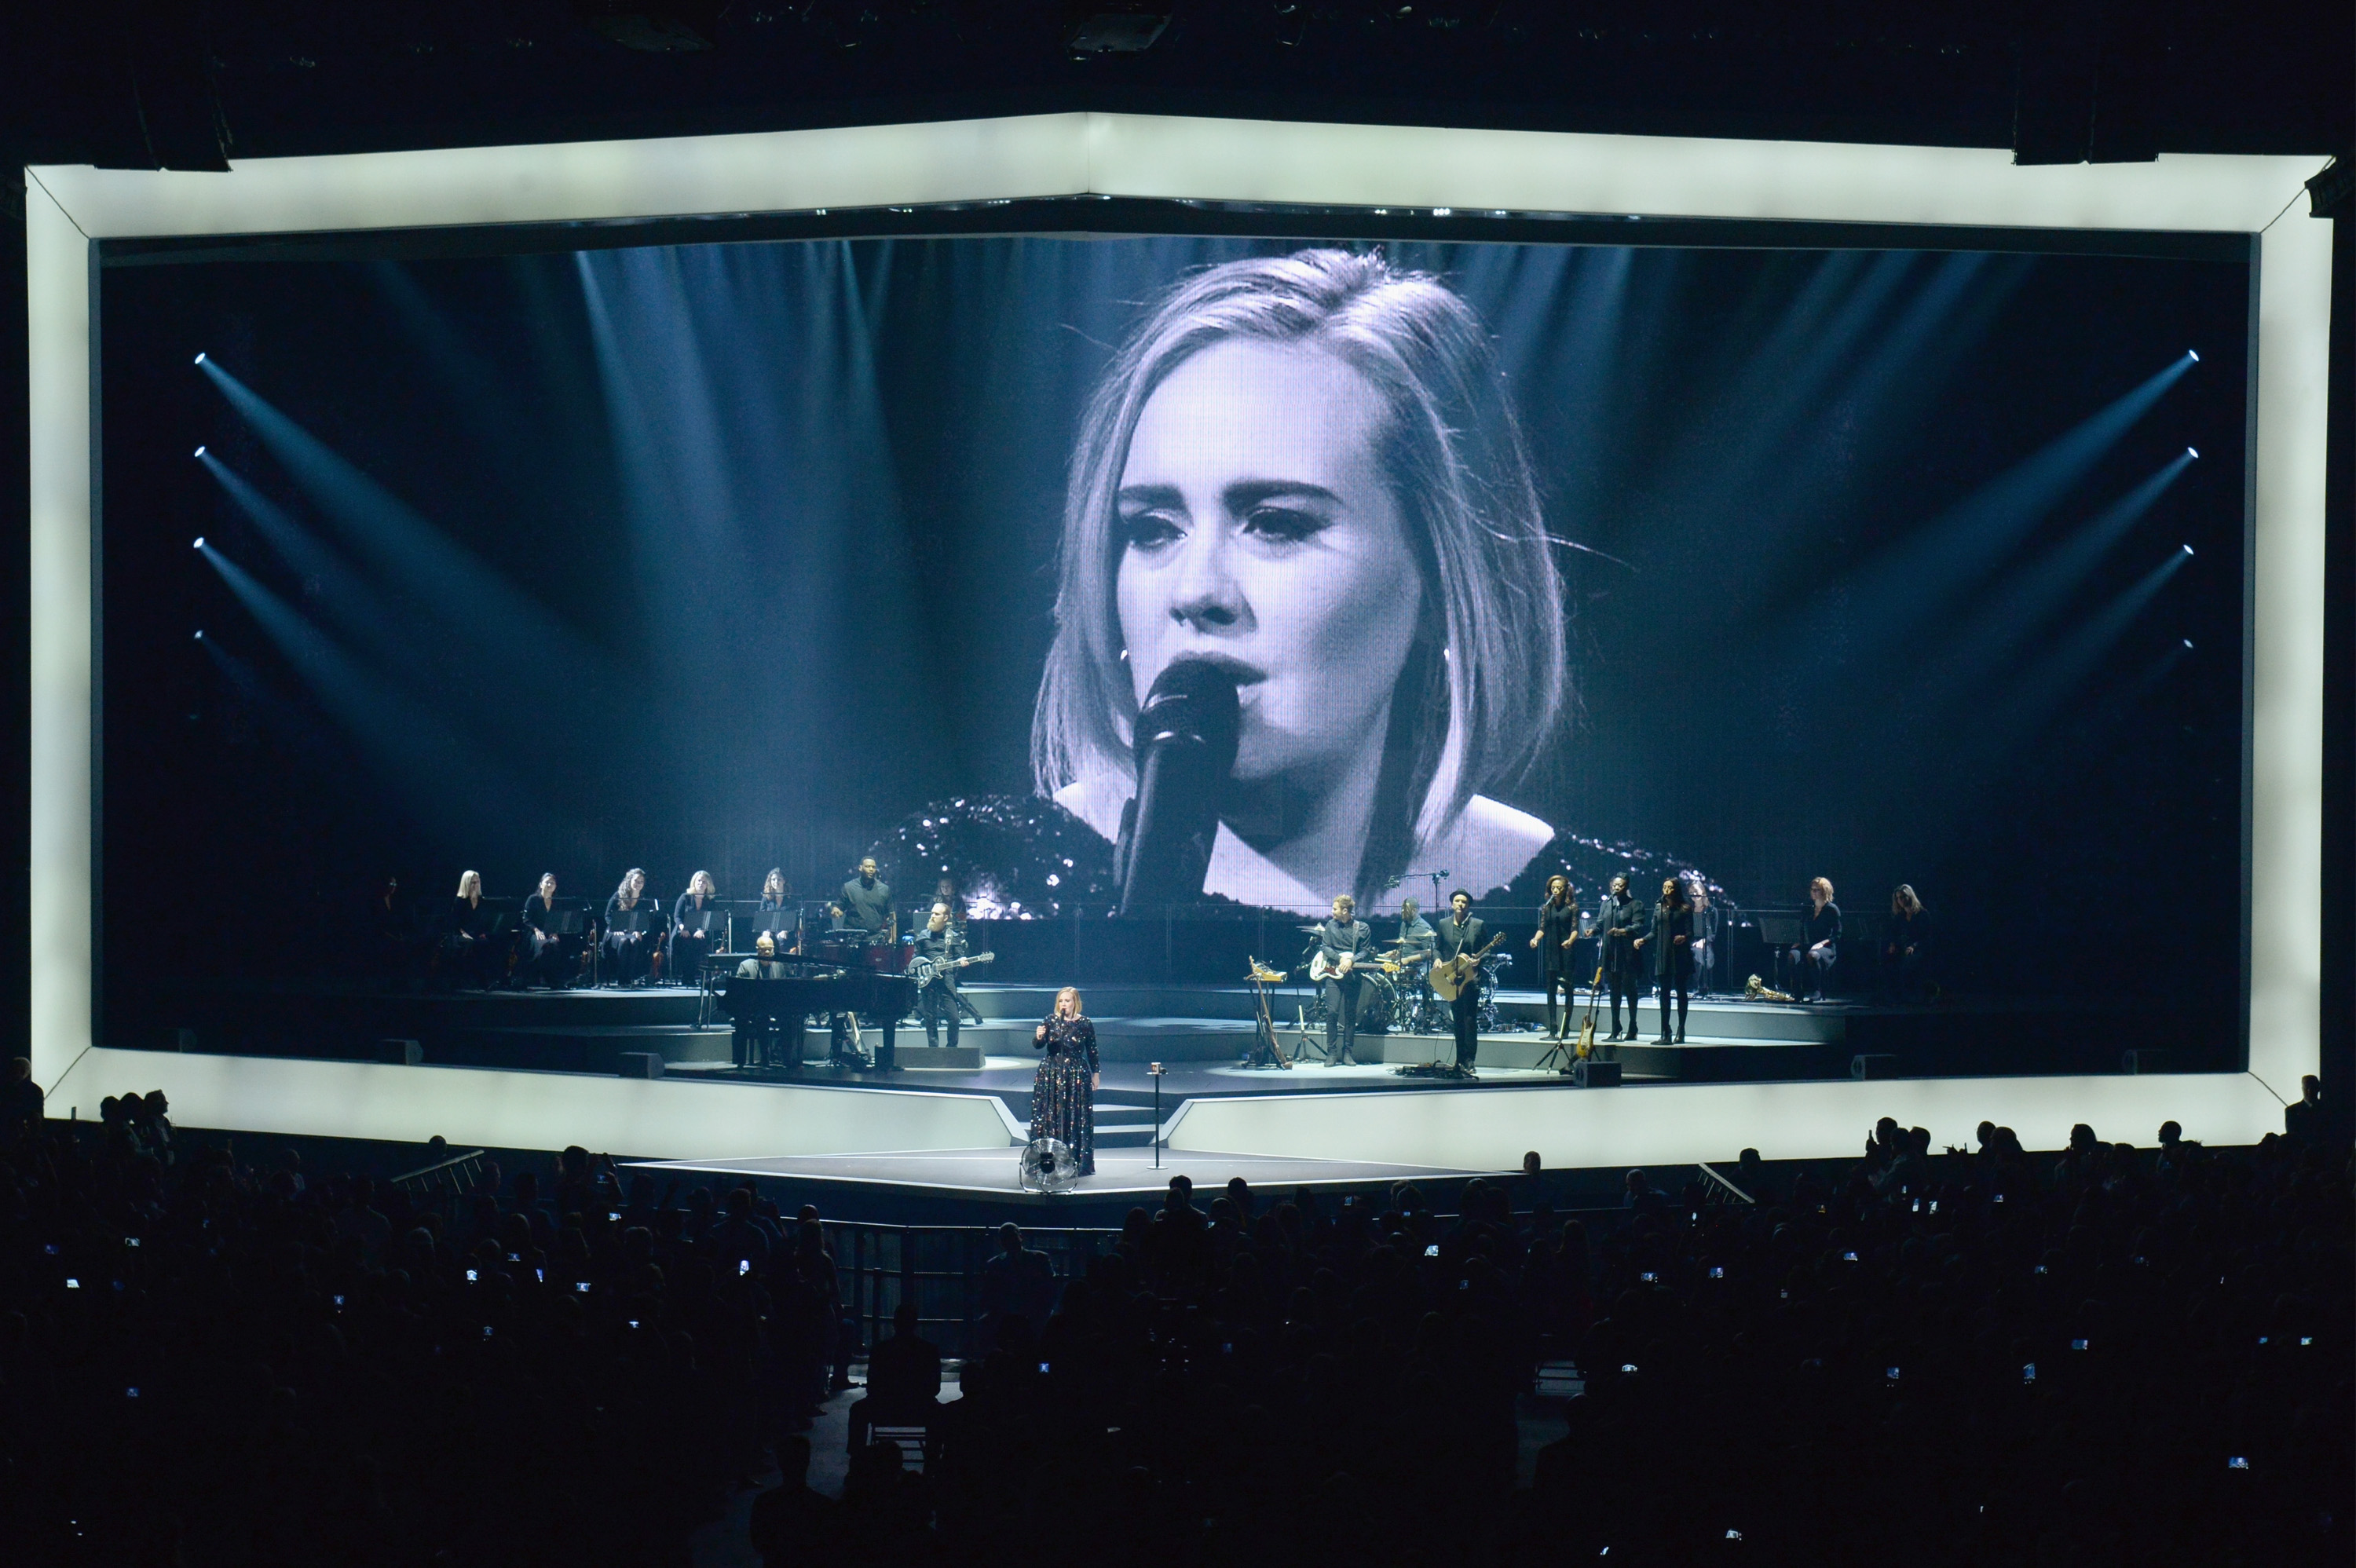 Singer Adele performs onstage at Madison Square Garden on Sept. 19, 2016 in New York City.